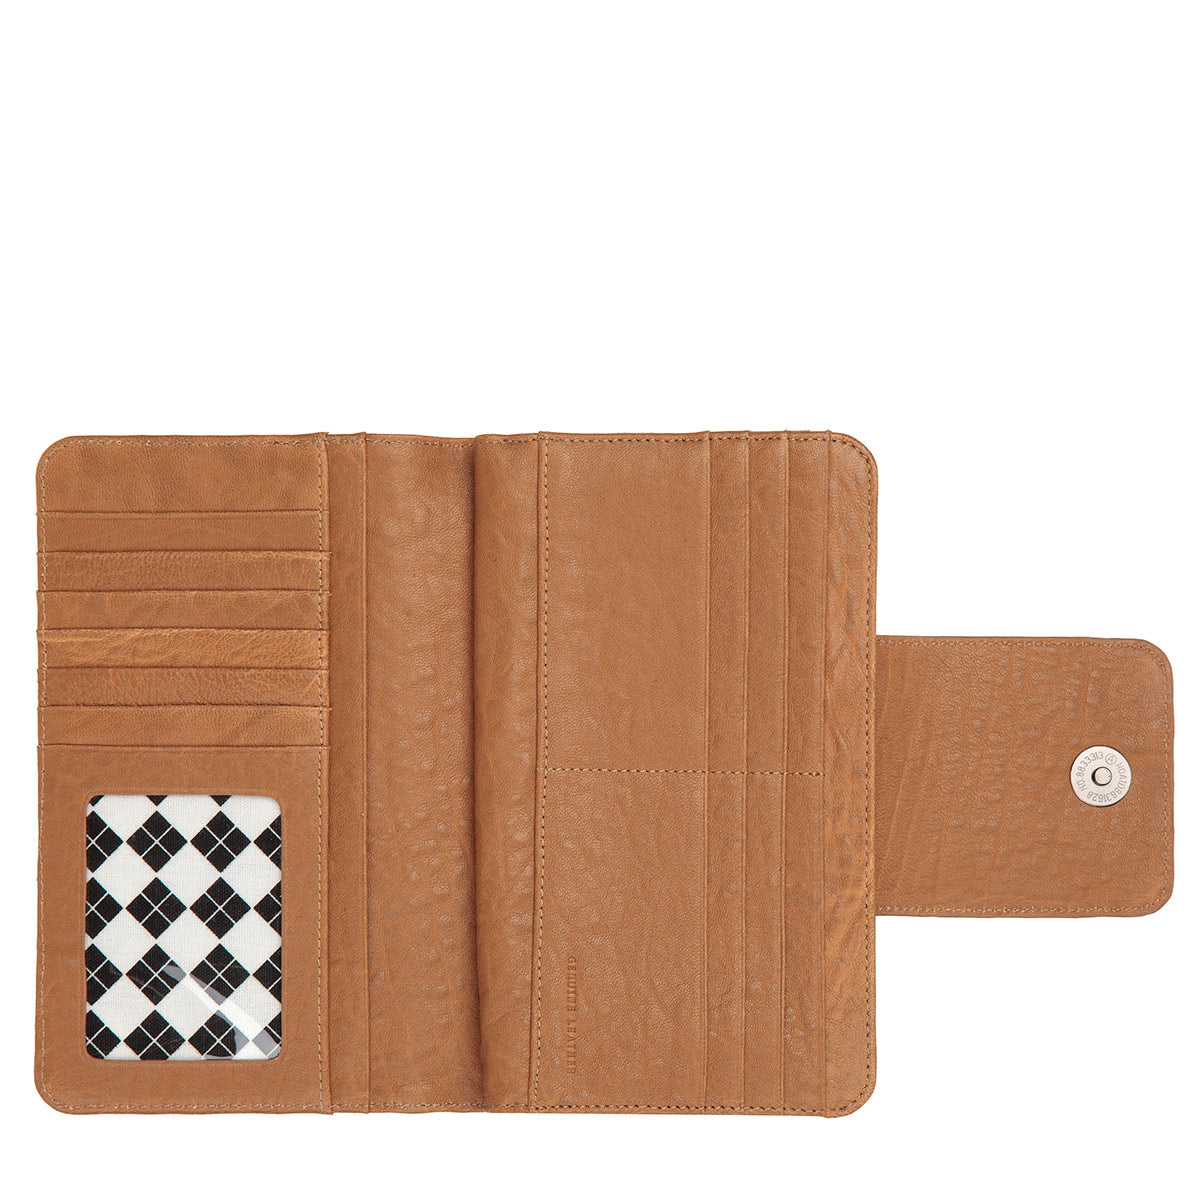 Status Anxiety 174 Leather Wallet Precipice Camel Shop